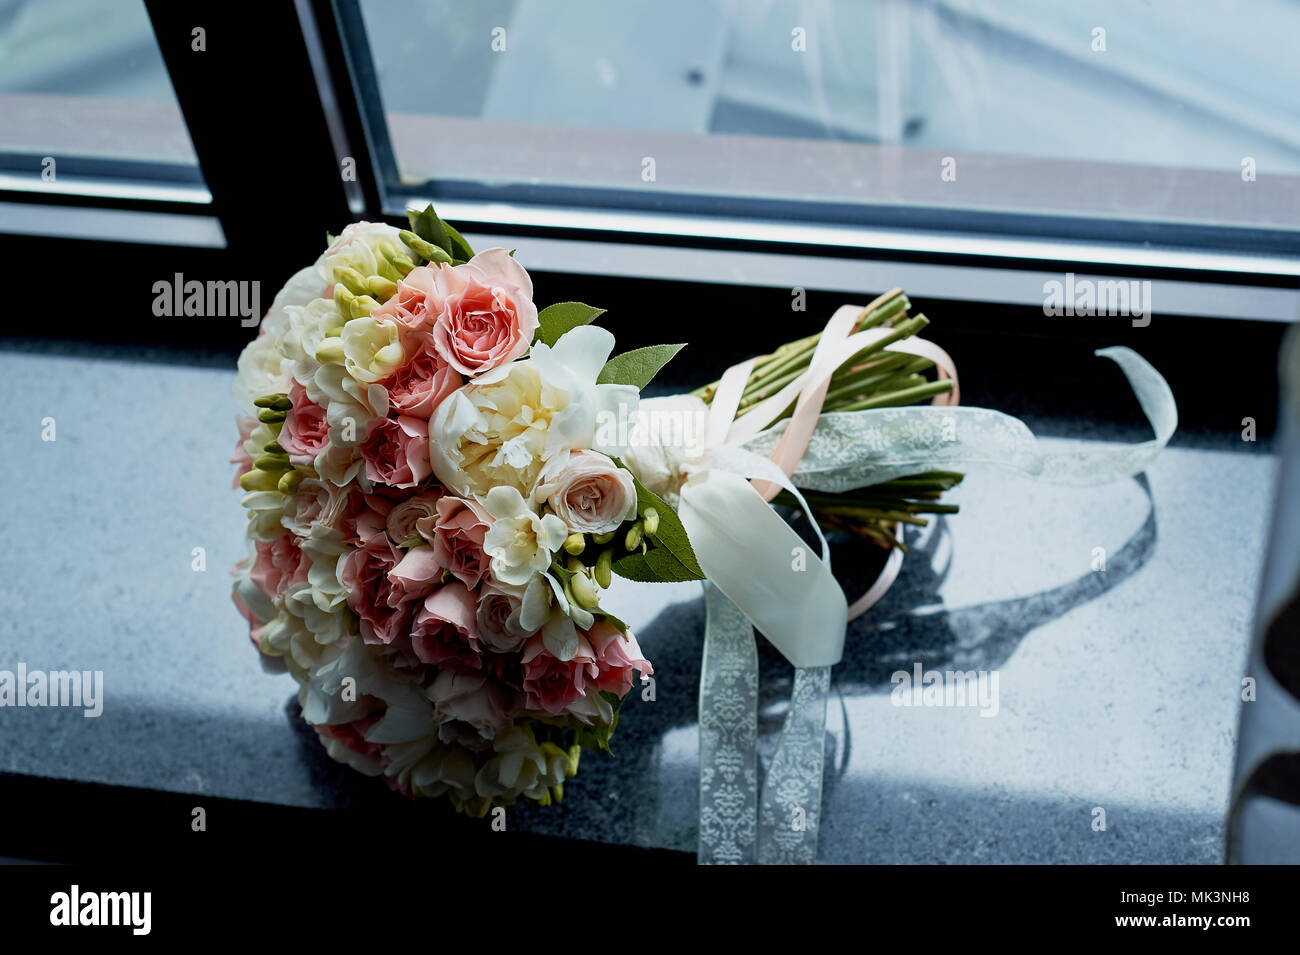 bouquet of the bride in pink.Wedding floristry. - Stock Image